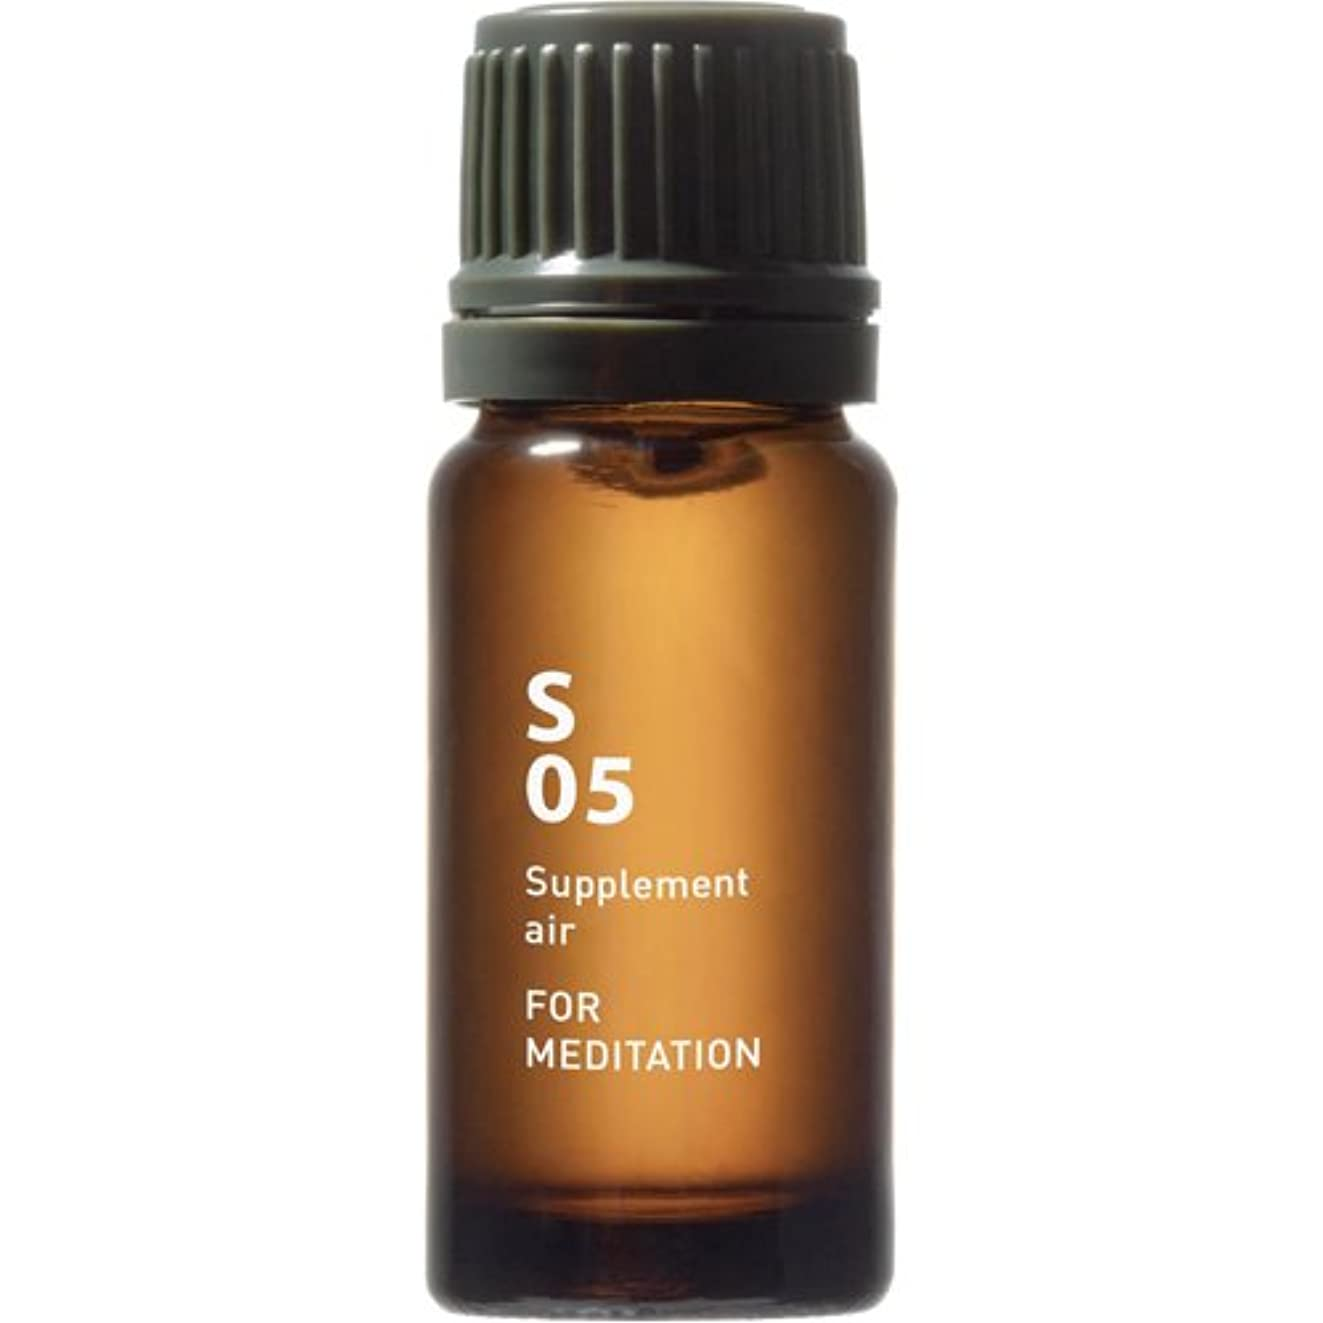 交じる記念日酔ったS05 FOR MEDITATION Supplement air 10ml